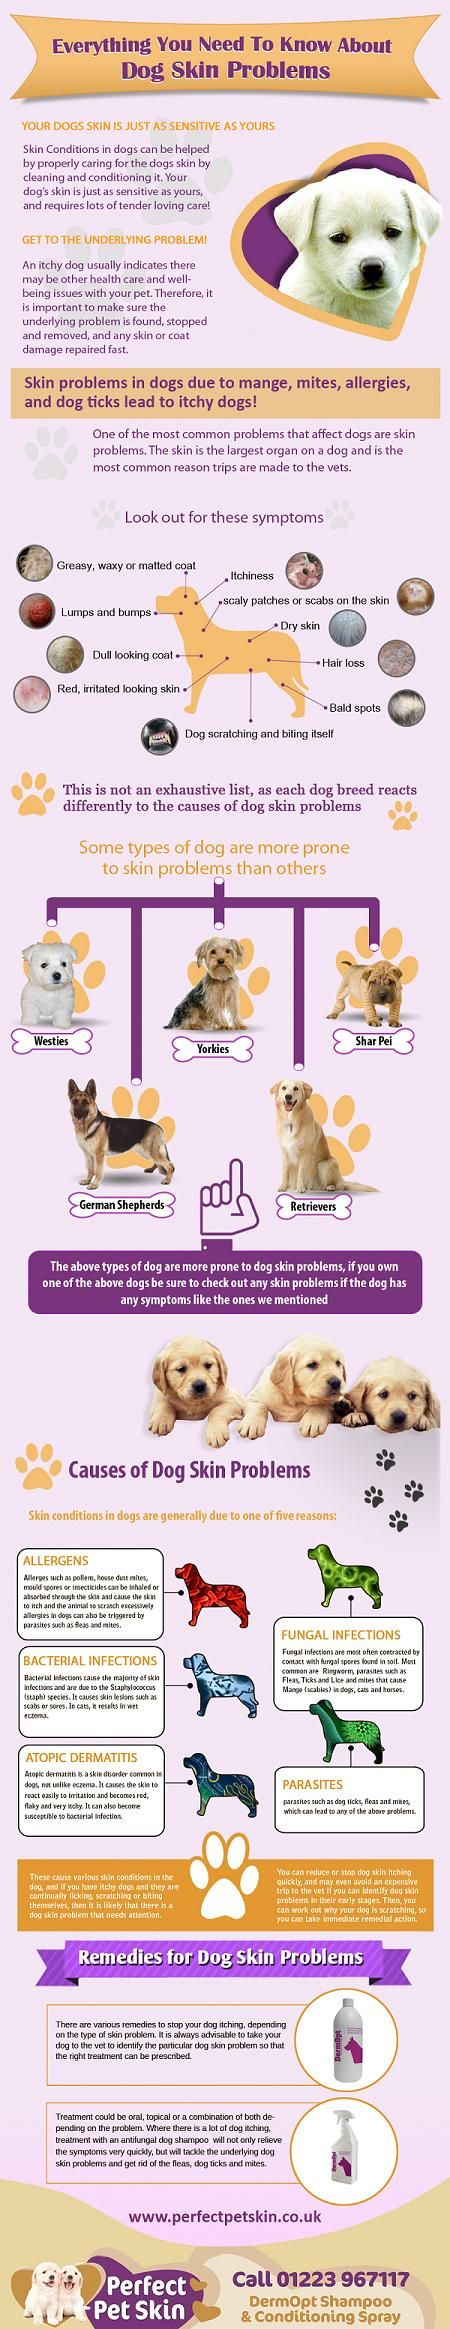 everything-you-need-to-know-about-dog-skin-problems-infographic